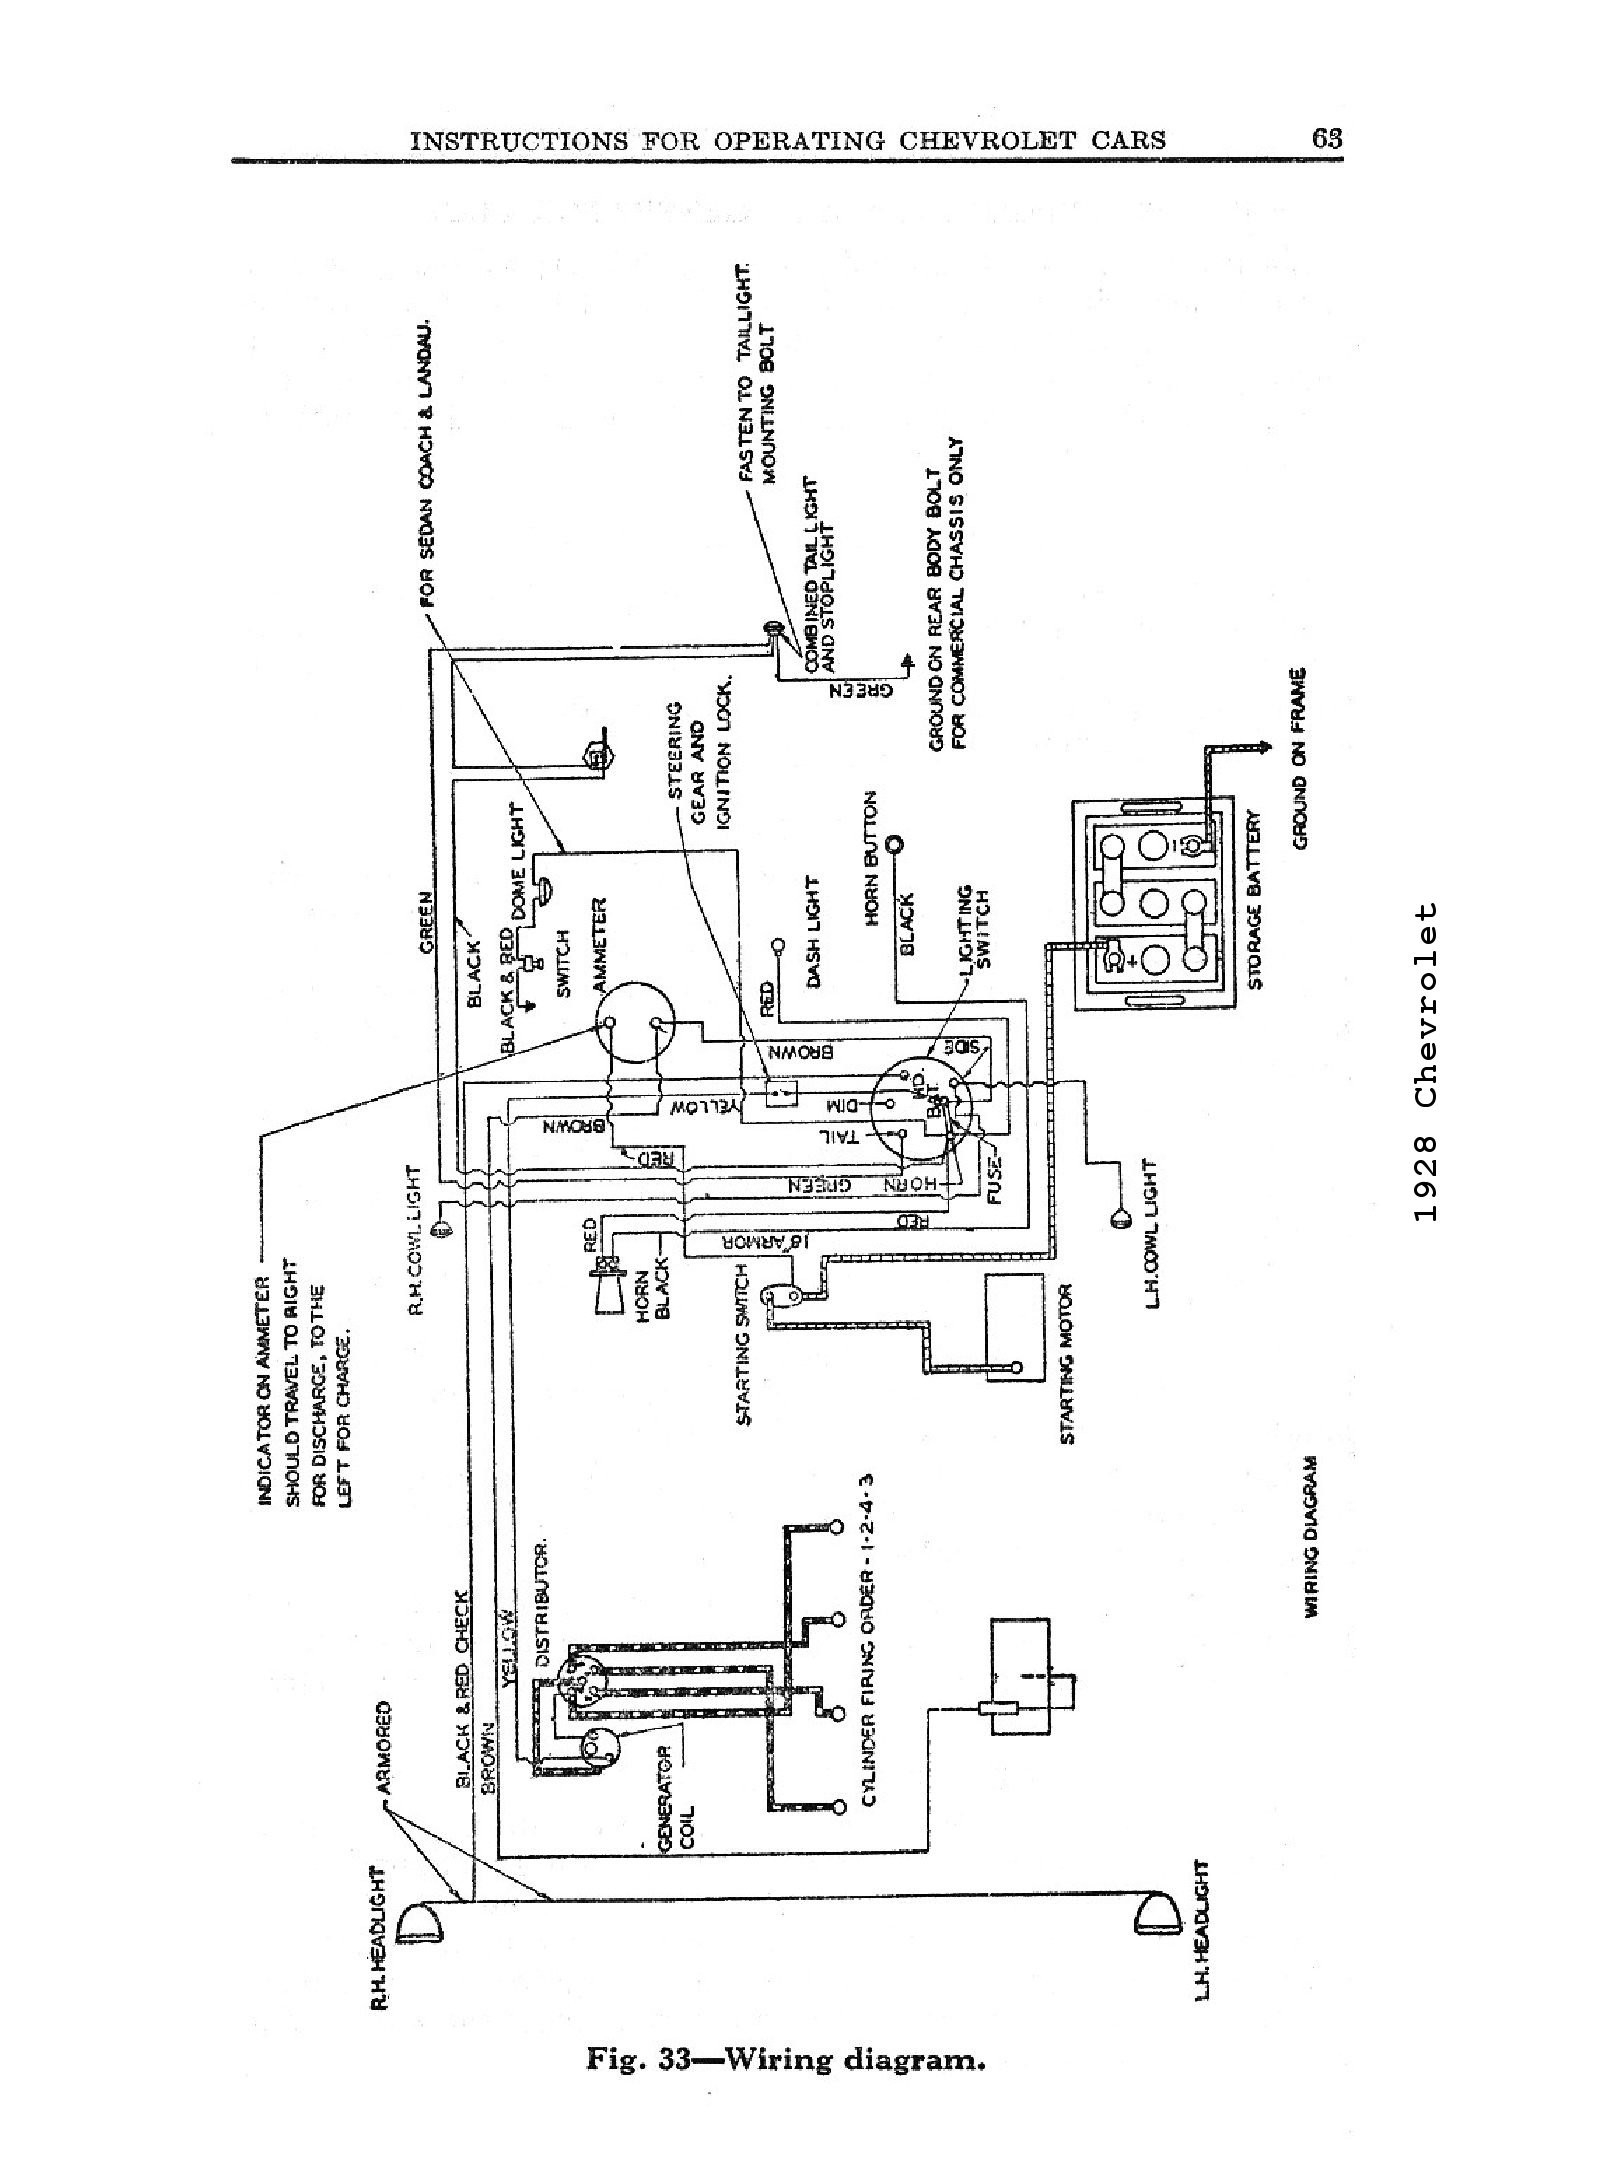 gm steering column wiring schematic Download-Chevy Tilt Steering Column Wiring Diagram Elegant Chevy Wiring Diagrams 19-i